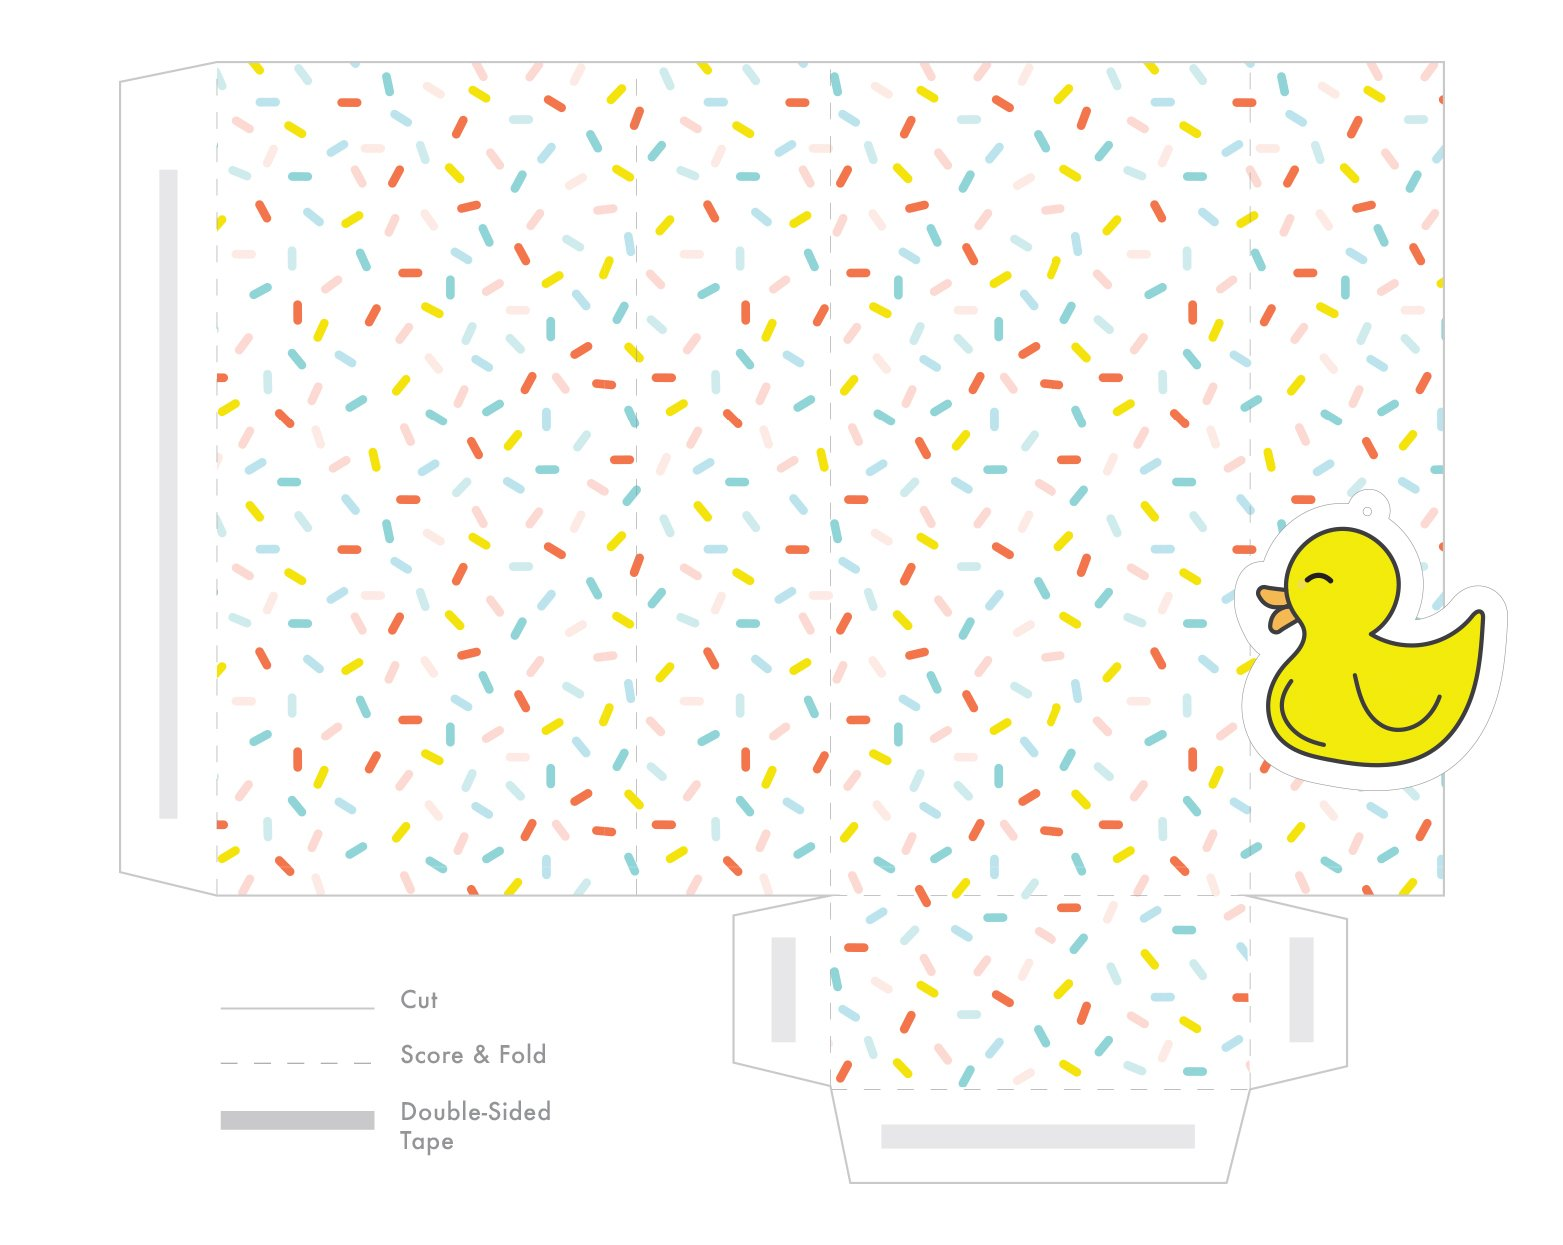 Dieline for printing sprinkle baby shower favor bag with rubber duck tag